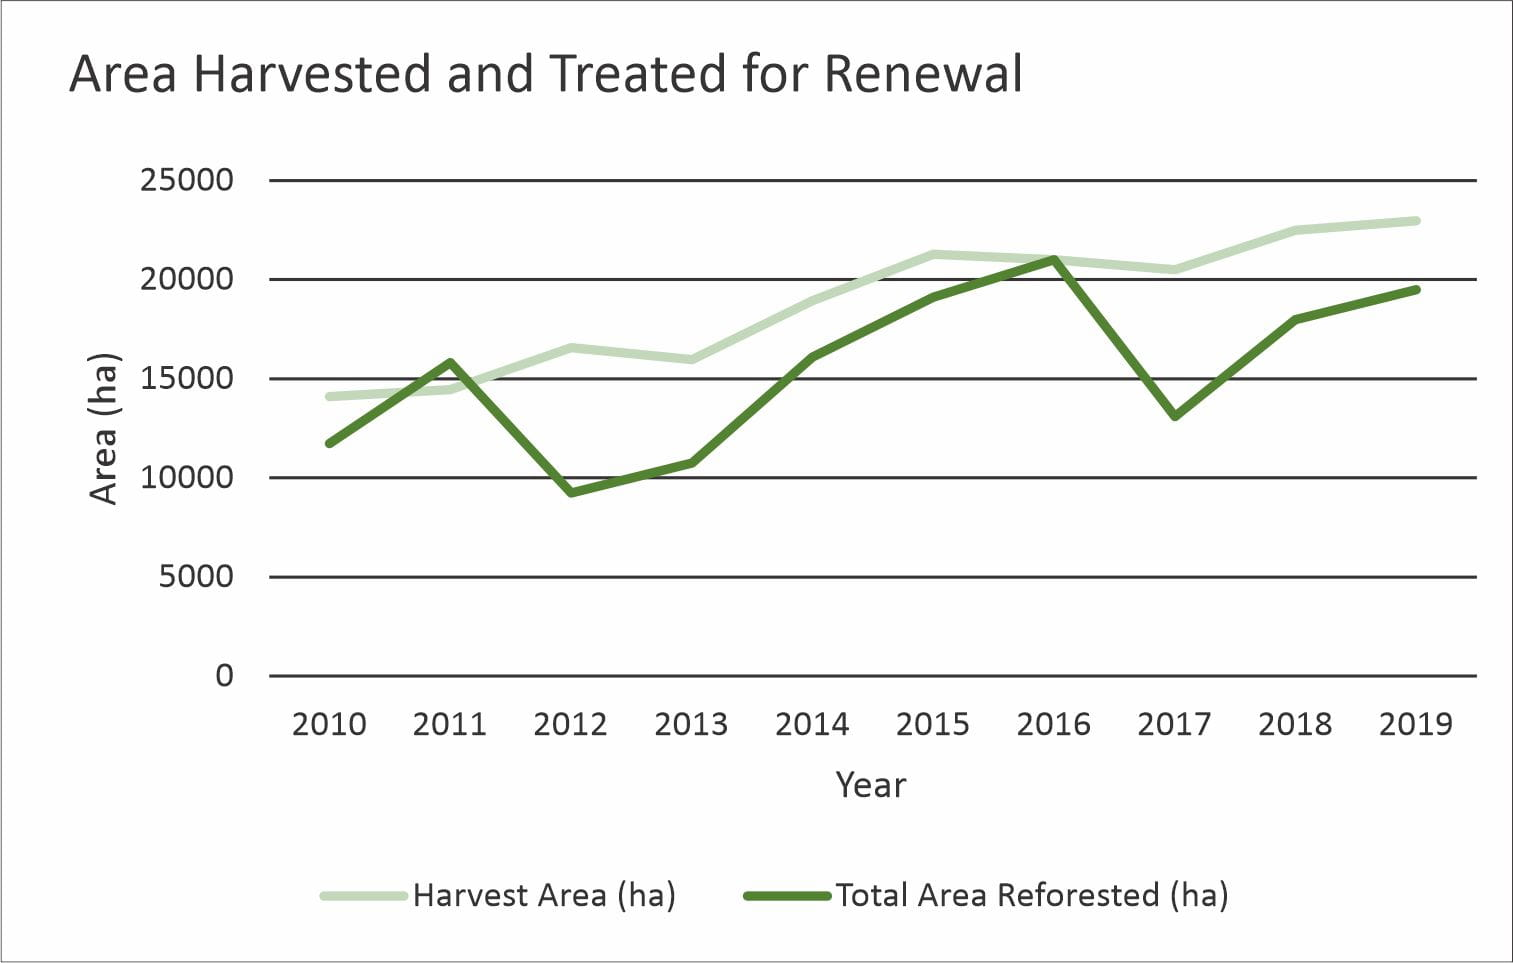 Forest Area Harvested and Treated for Renewal Graph